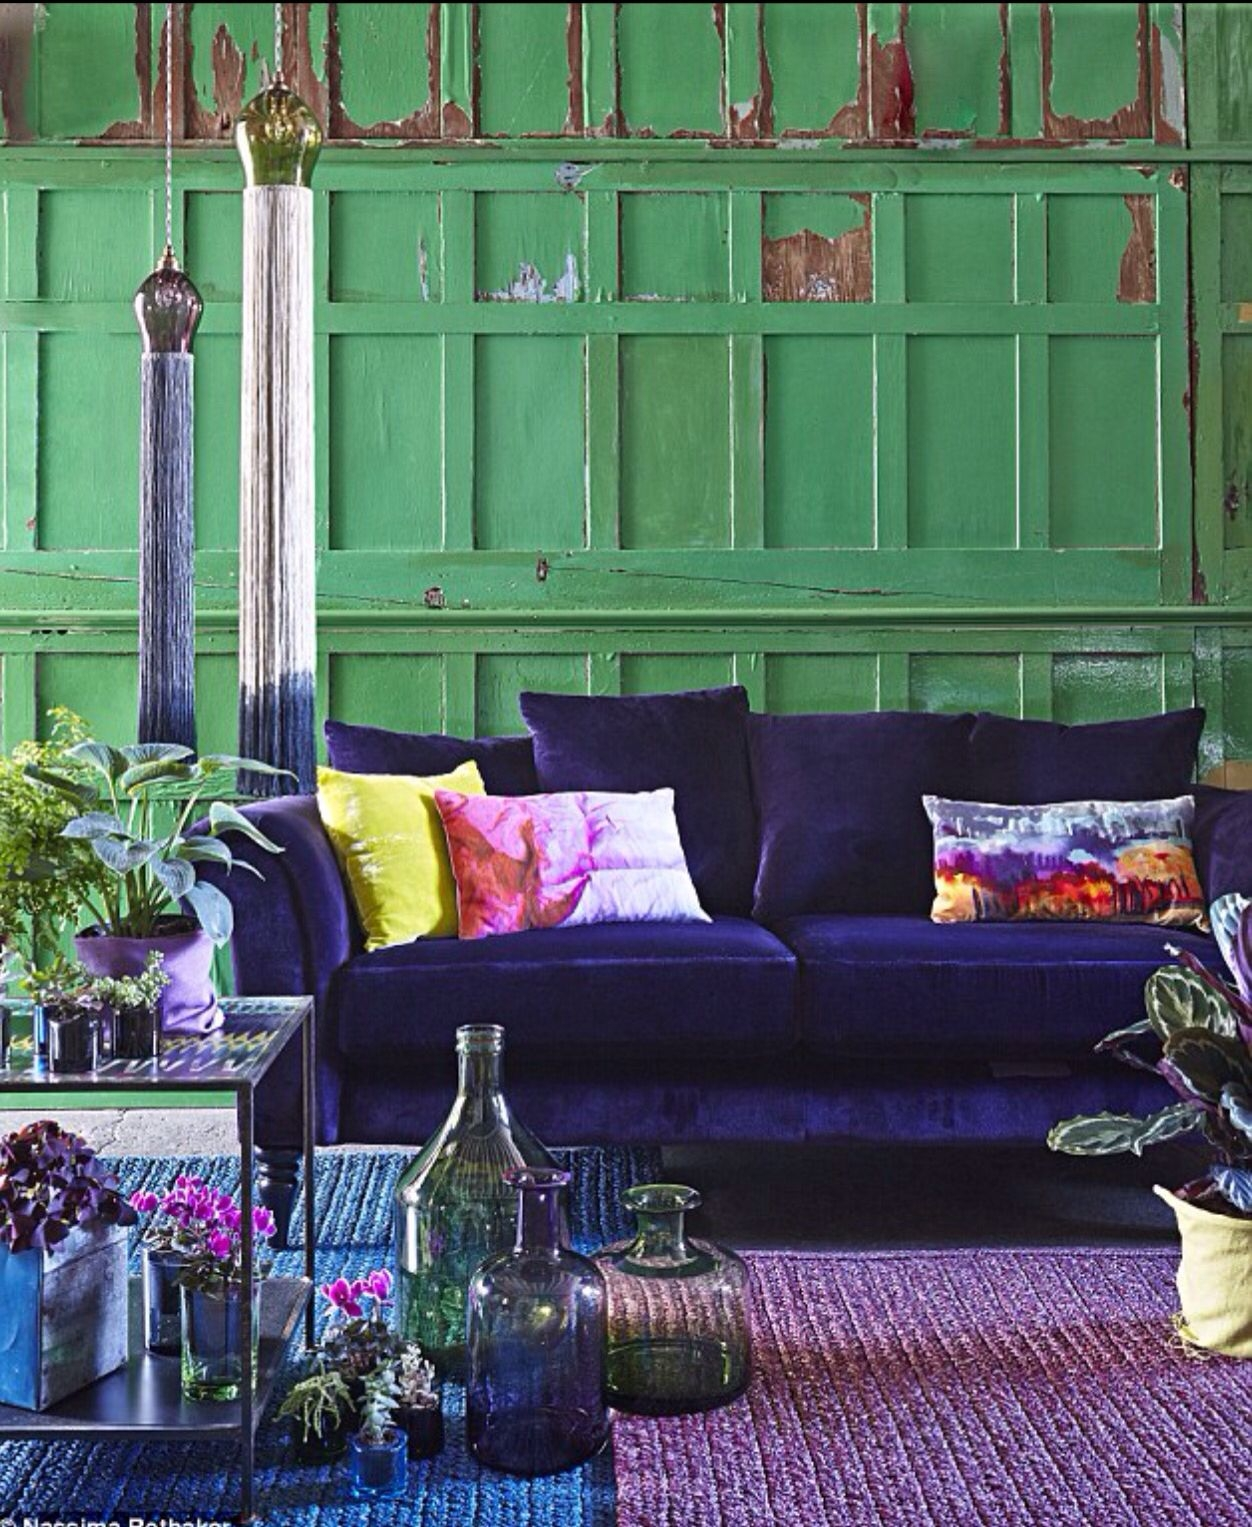 Magnificent Home Decor Ideas Living Room Modern Boho area Rug with Plum Accents On Artistic Indigo Velvet sofa Green Walls Purple Accents On Home Decor Ideas Living Room Modern Boho area Rug with Plum Accents